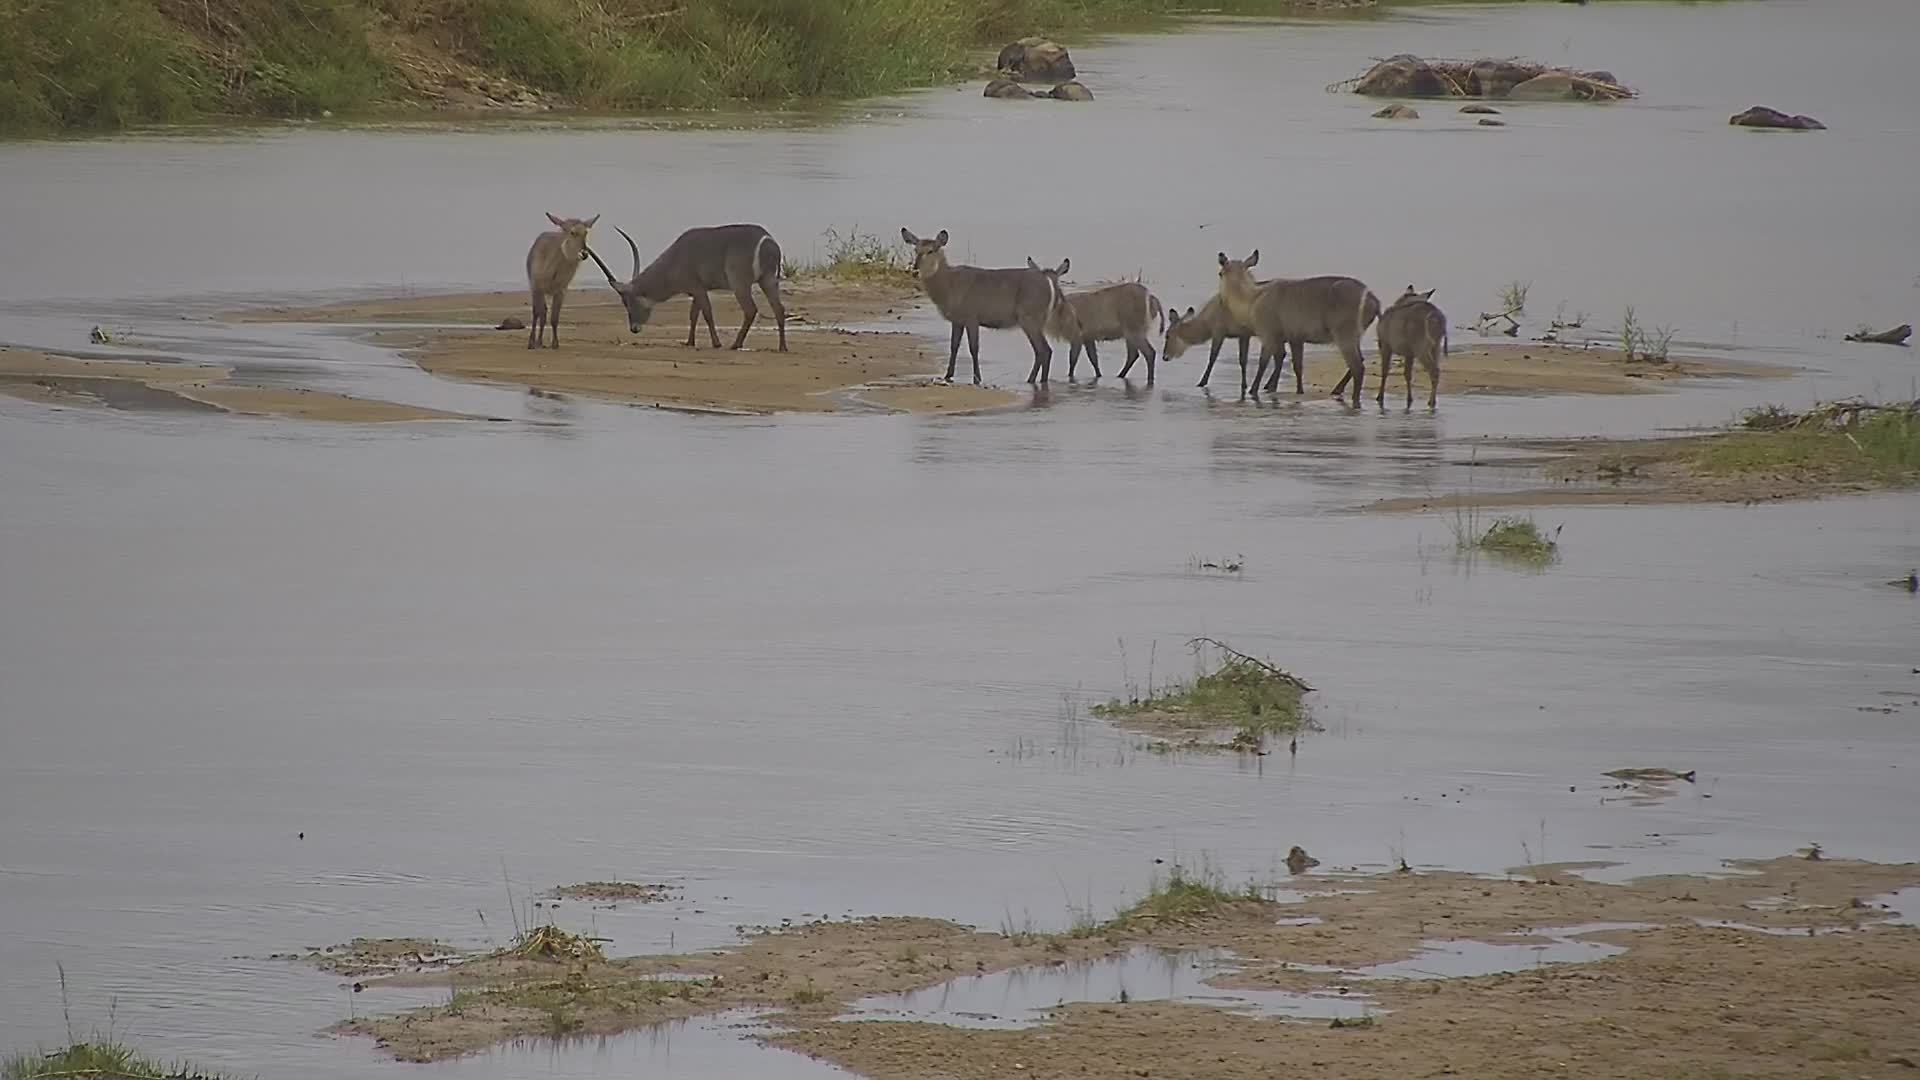 VIDEO: Waterbucks try to cross the river, but suddenly they run back to the island